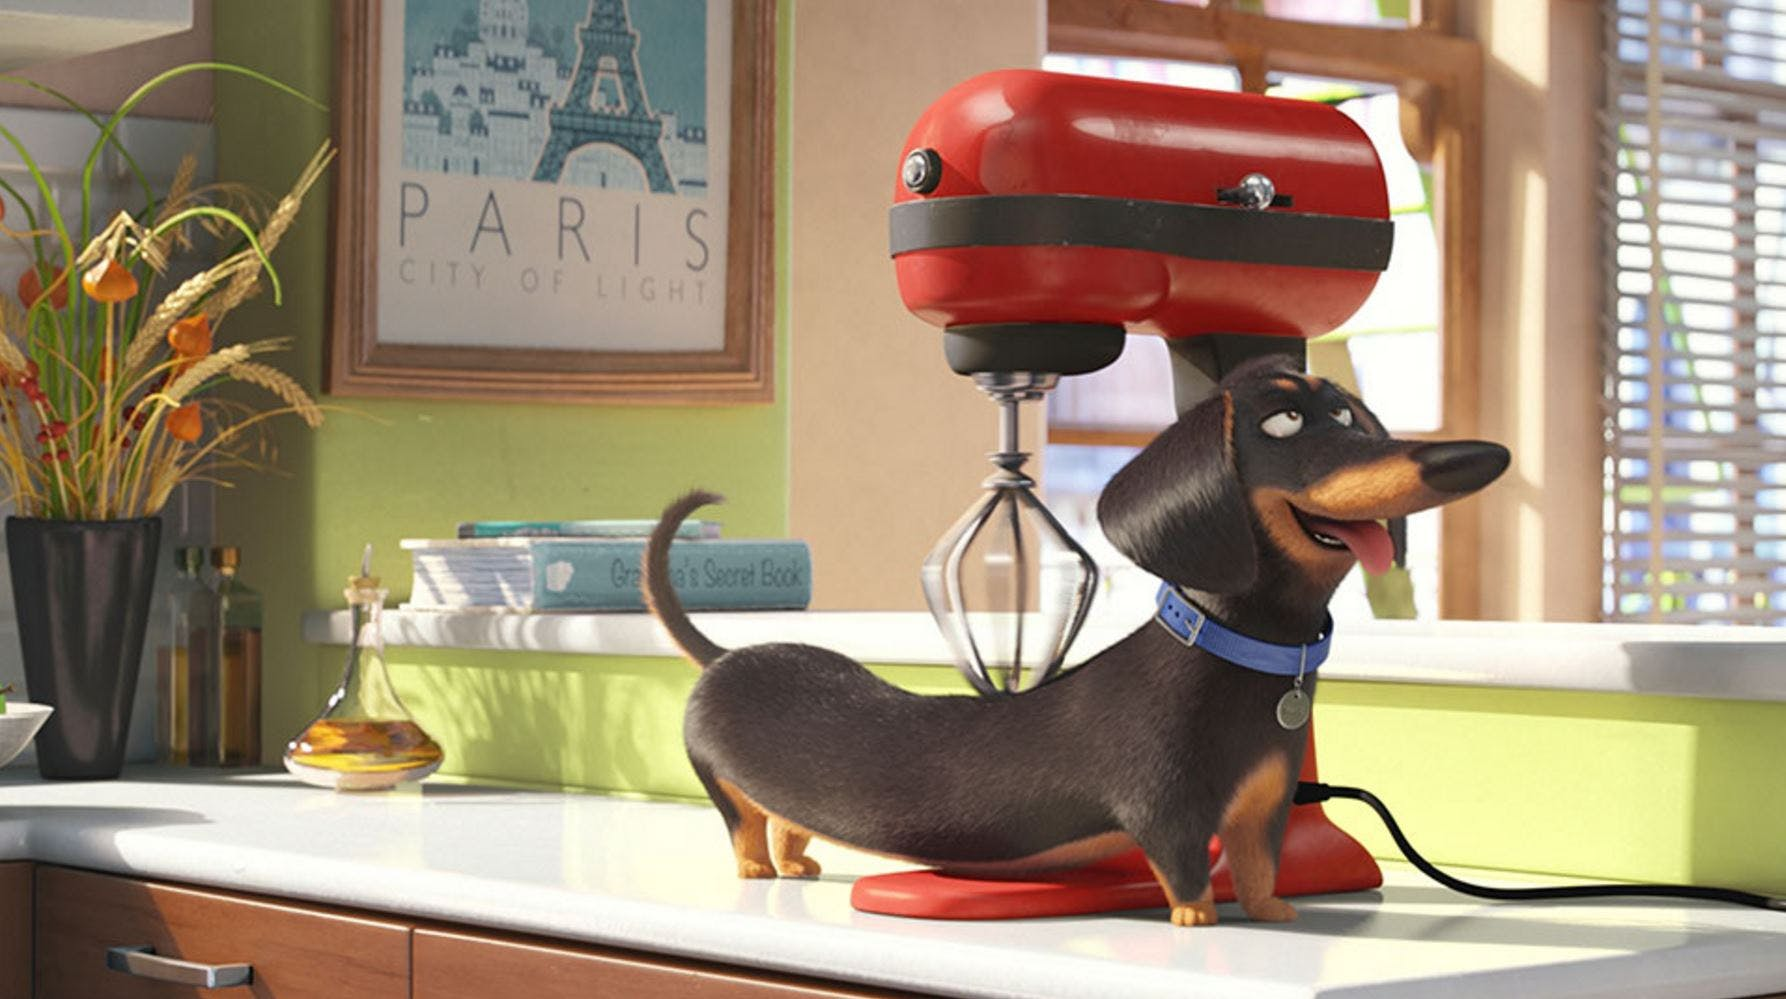 Buddy from The Secret Life of Pets